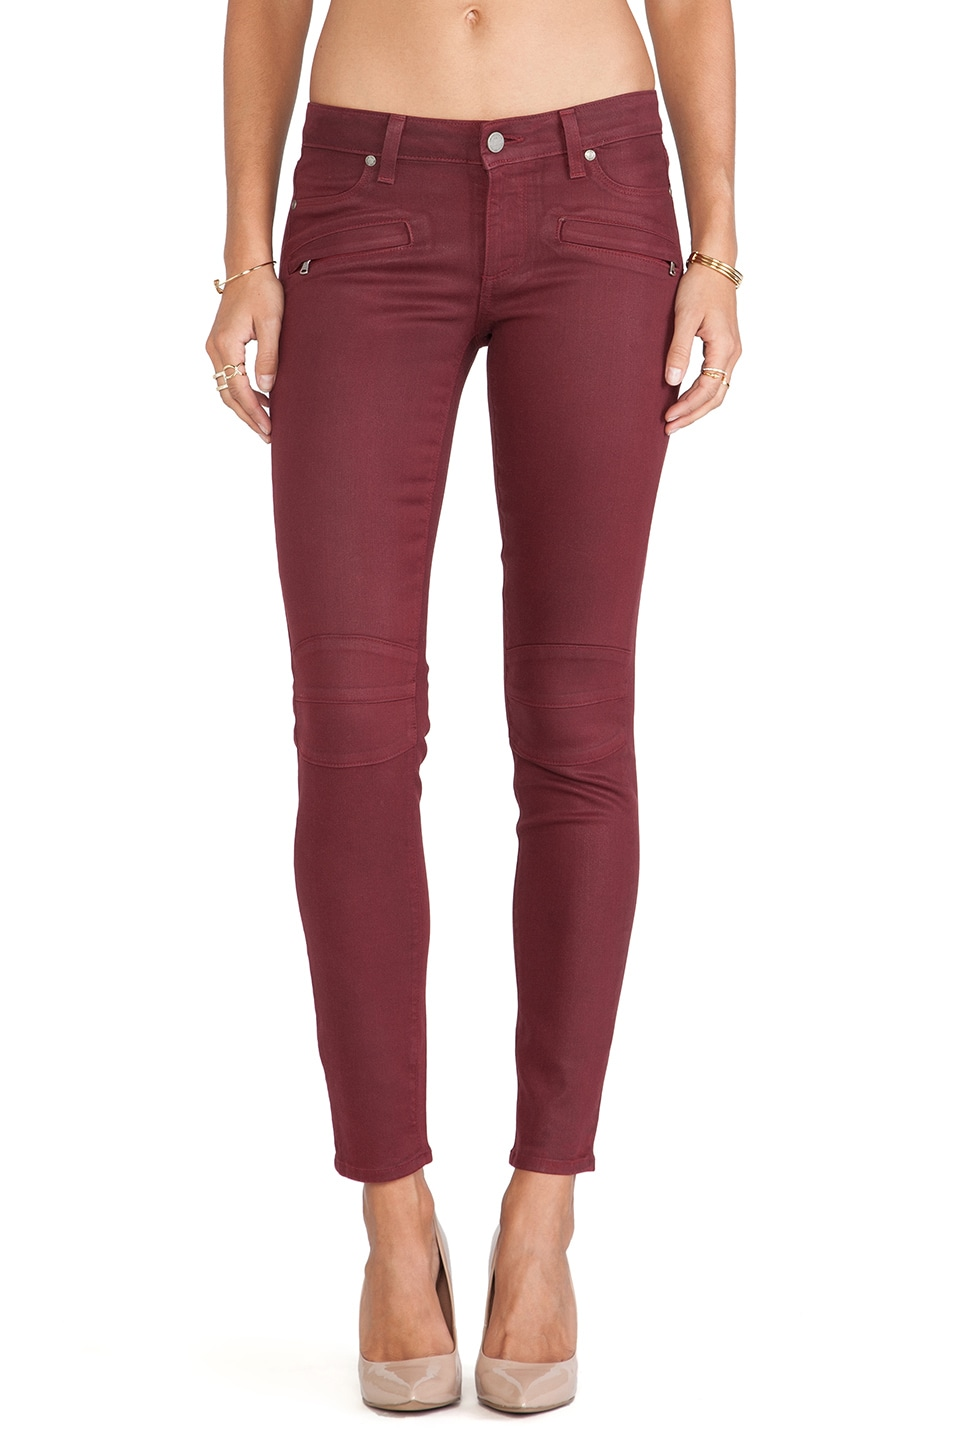 PAIGE Denim Ollie Skinny with Faux Pockets in Shiraz Silk